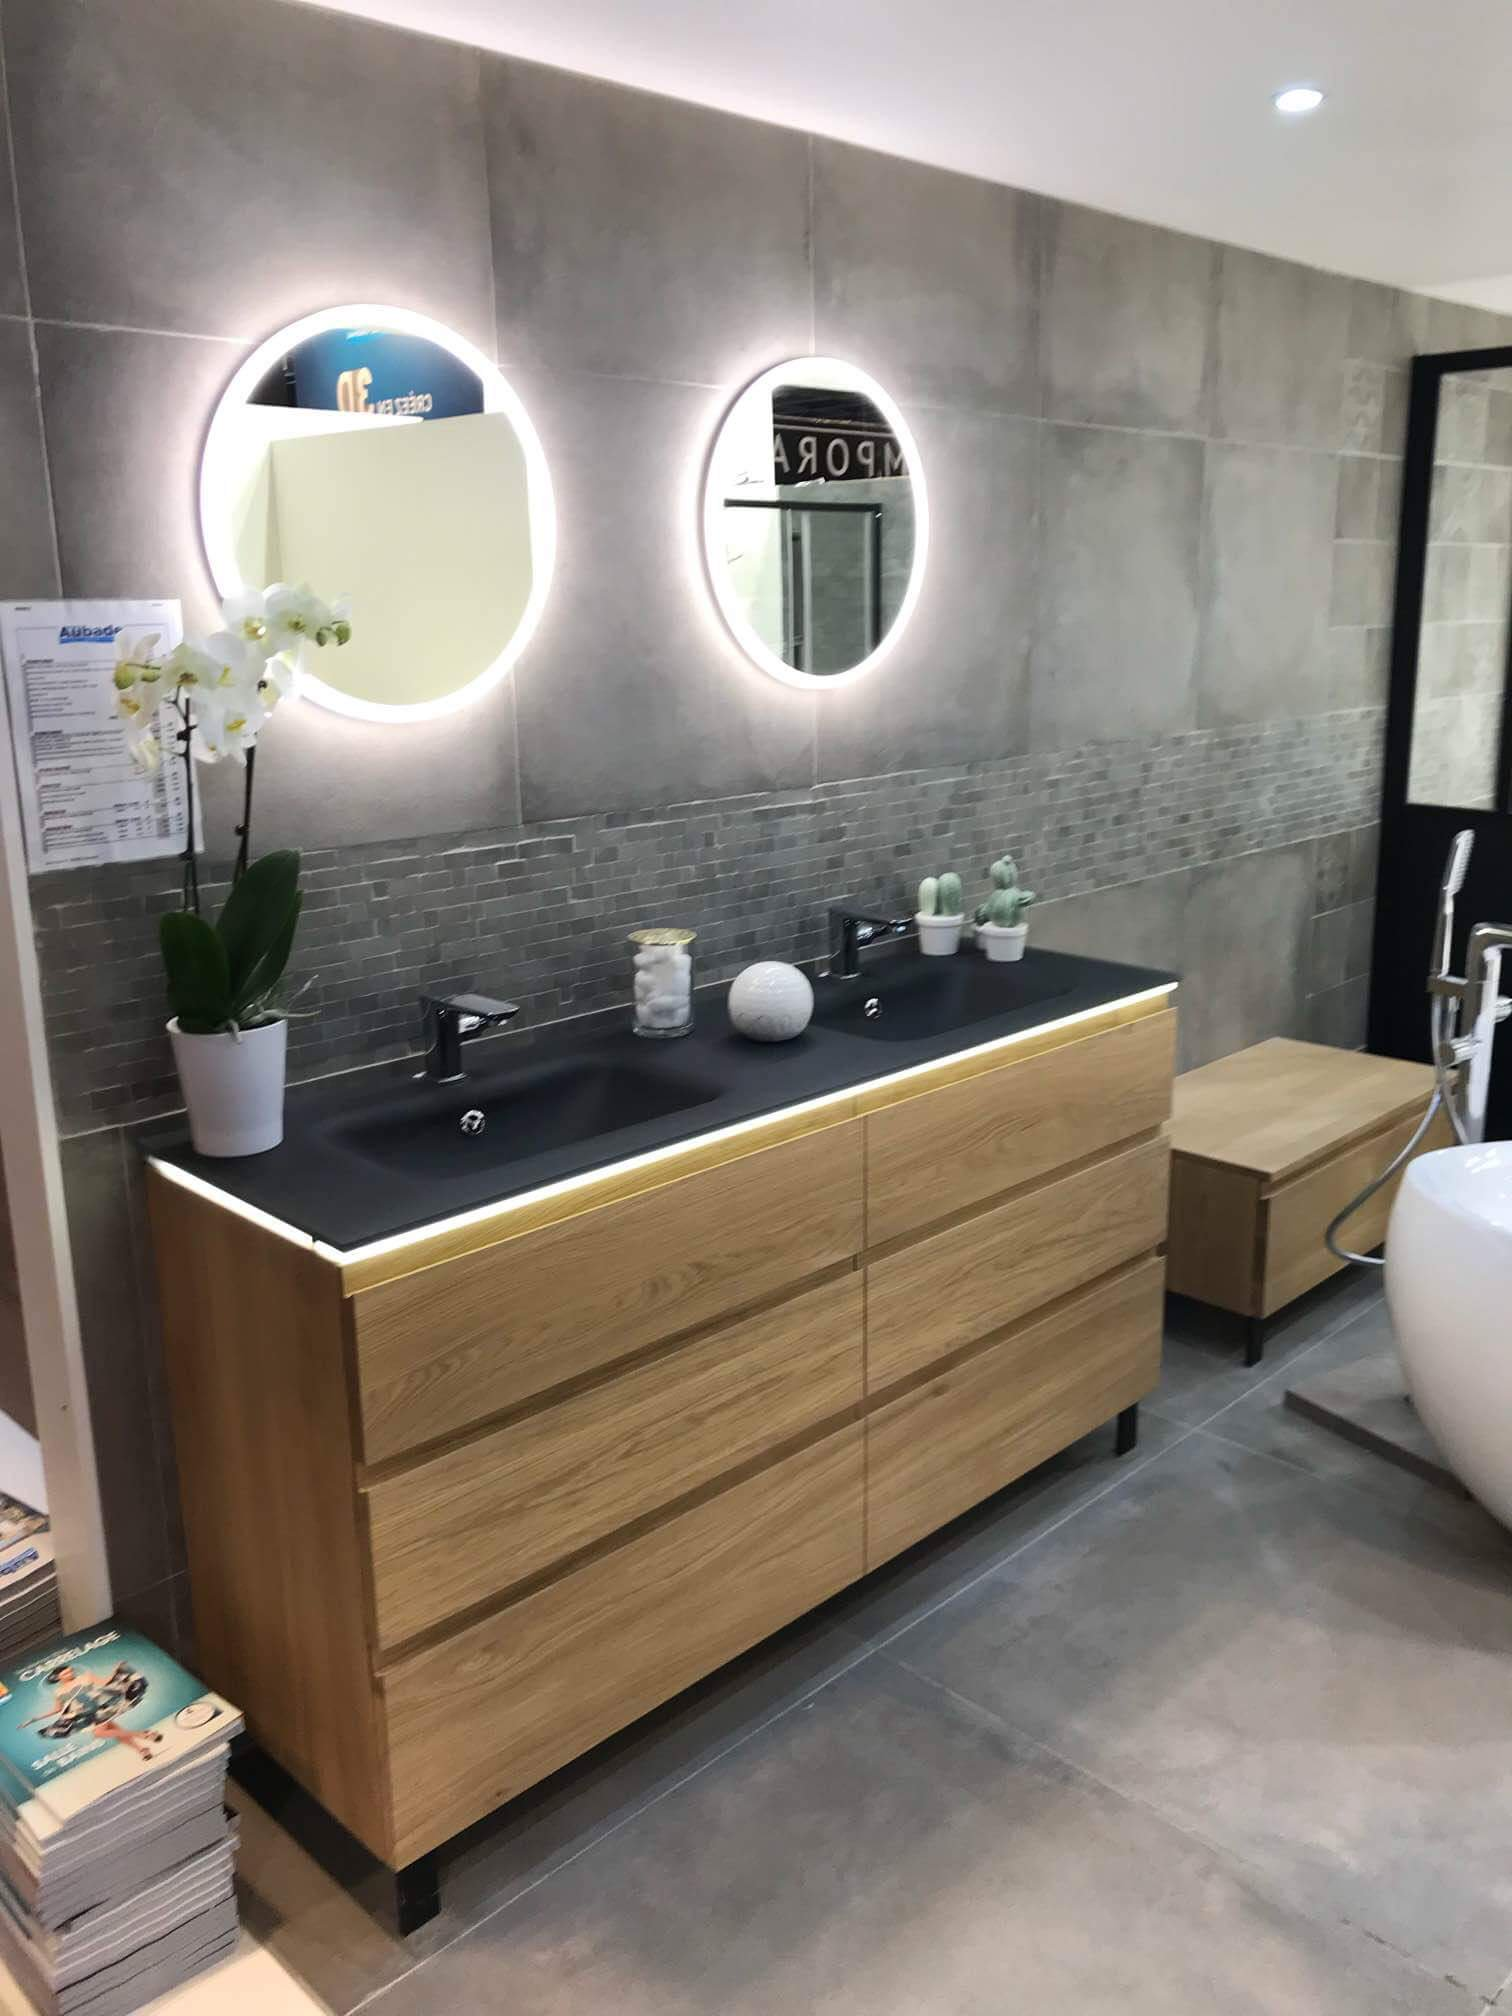 Storage in Modern Bathroom